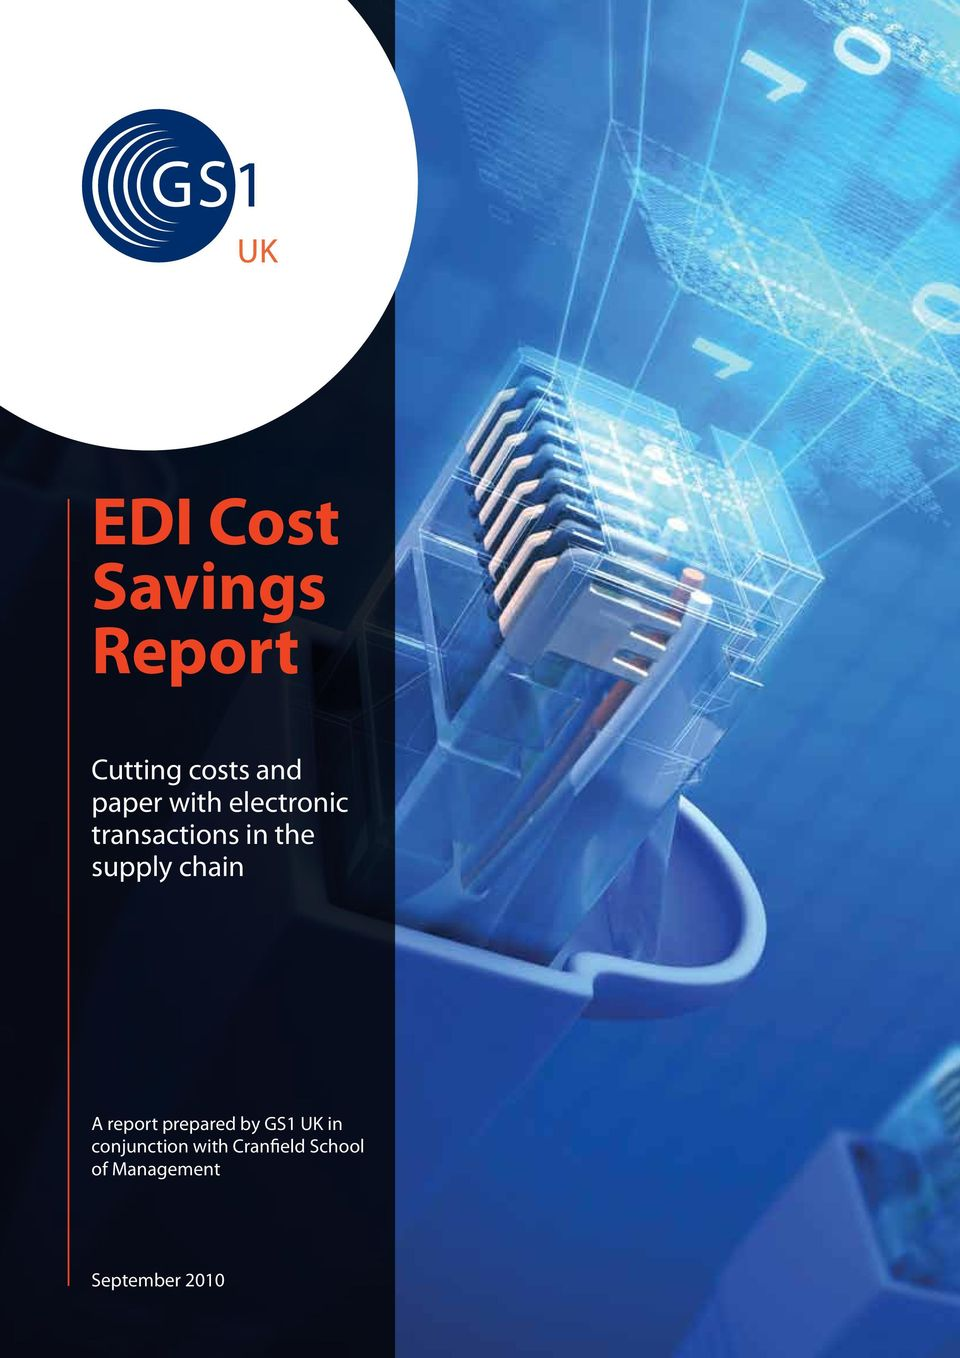 chain A report prepared by GS1 UK in